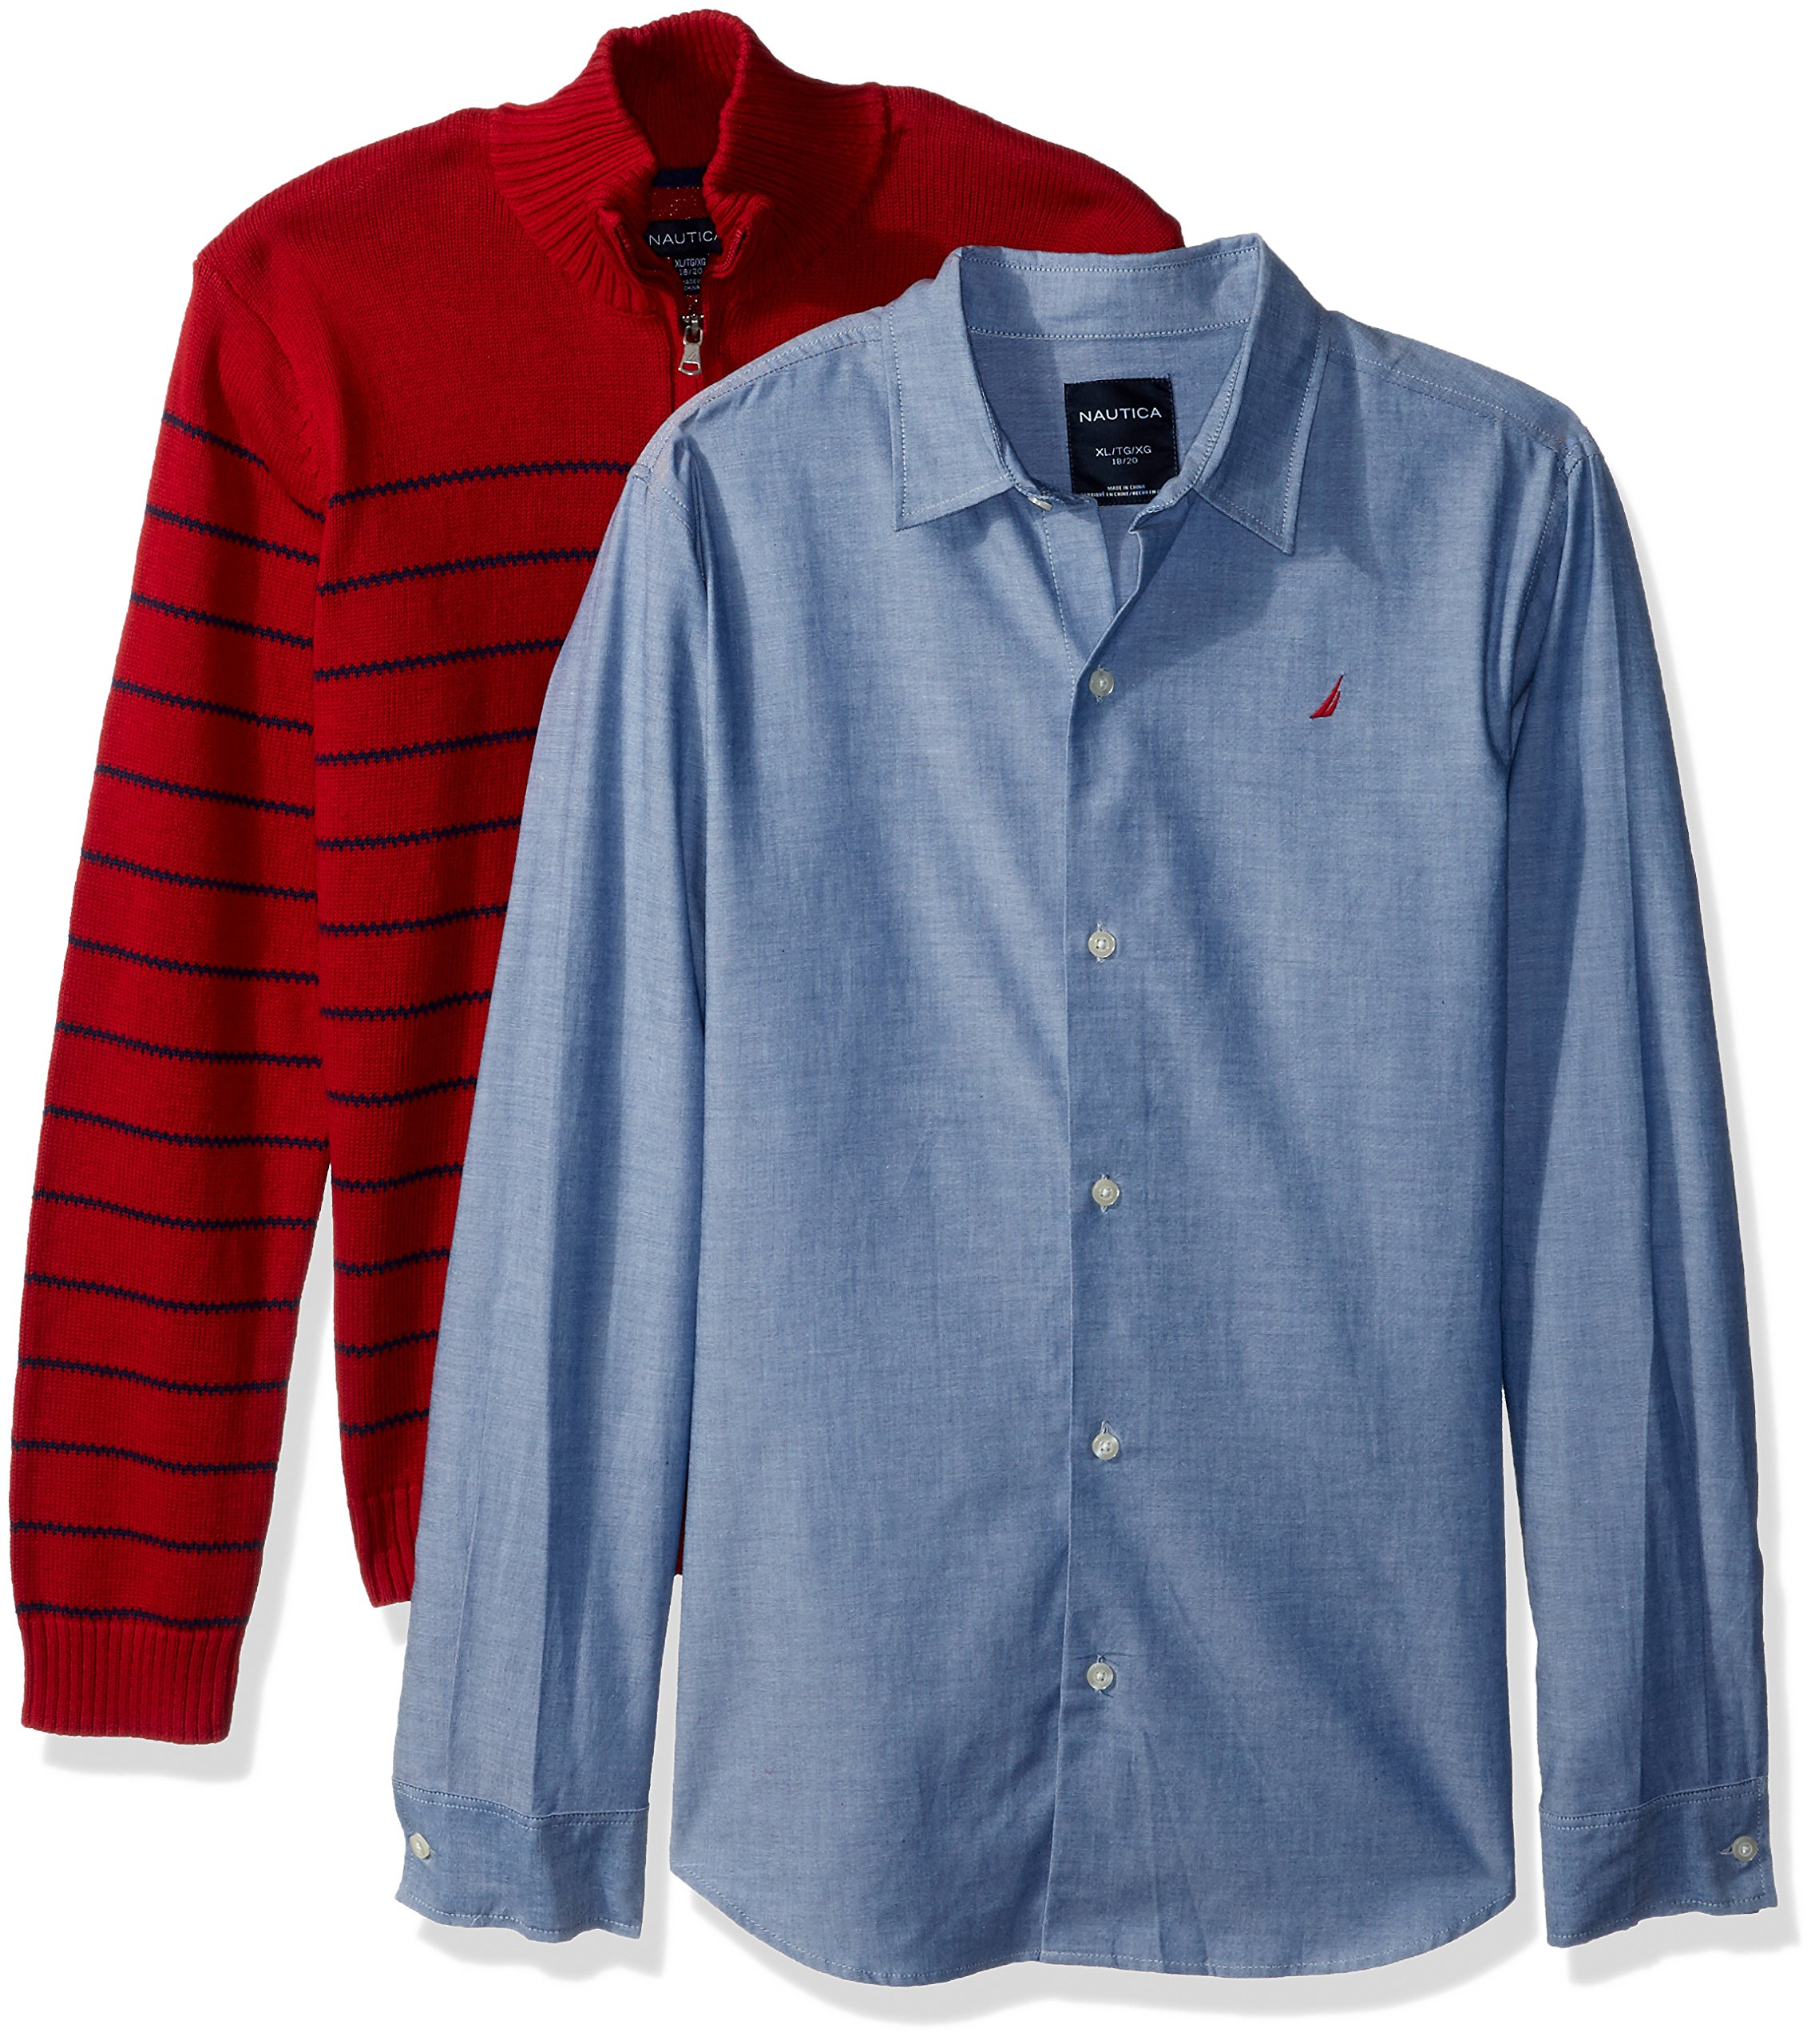 Nautica Boys' Big Two Piece Sweater and Chambray Shirt Set, red Rouge, Medium (10/12)